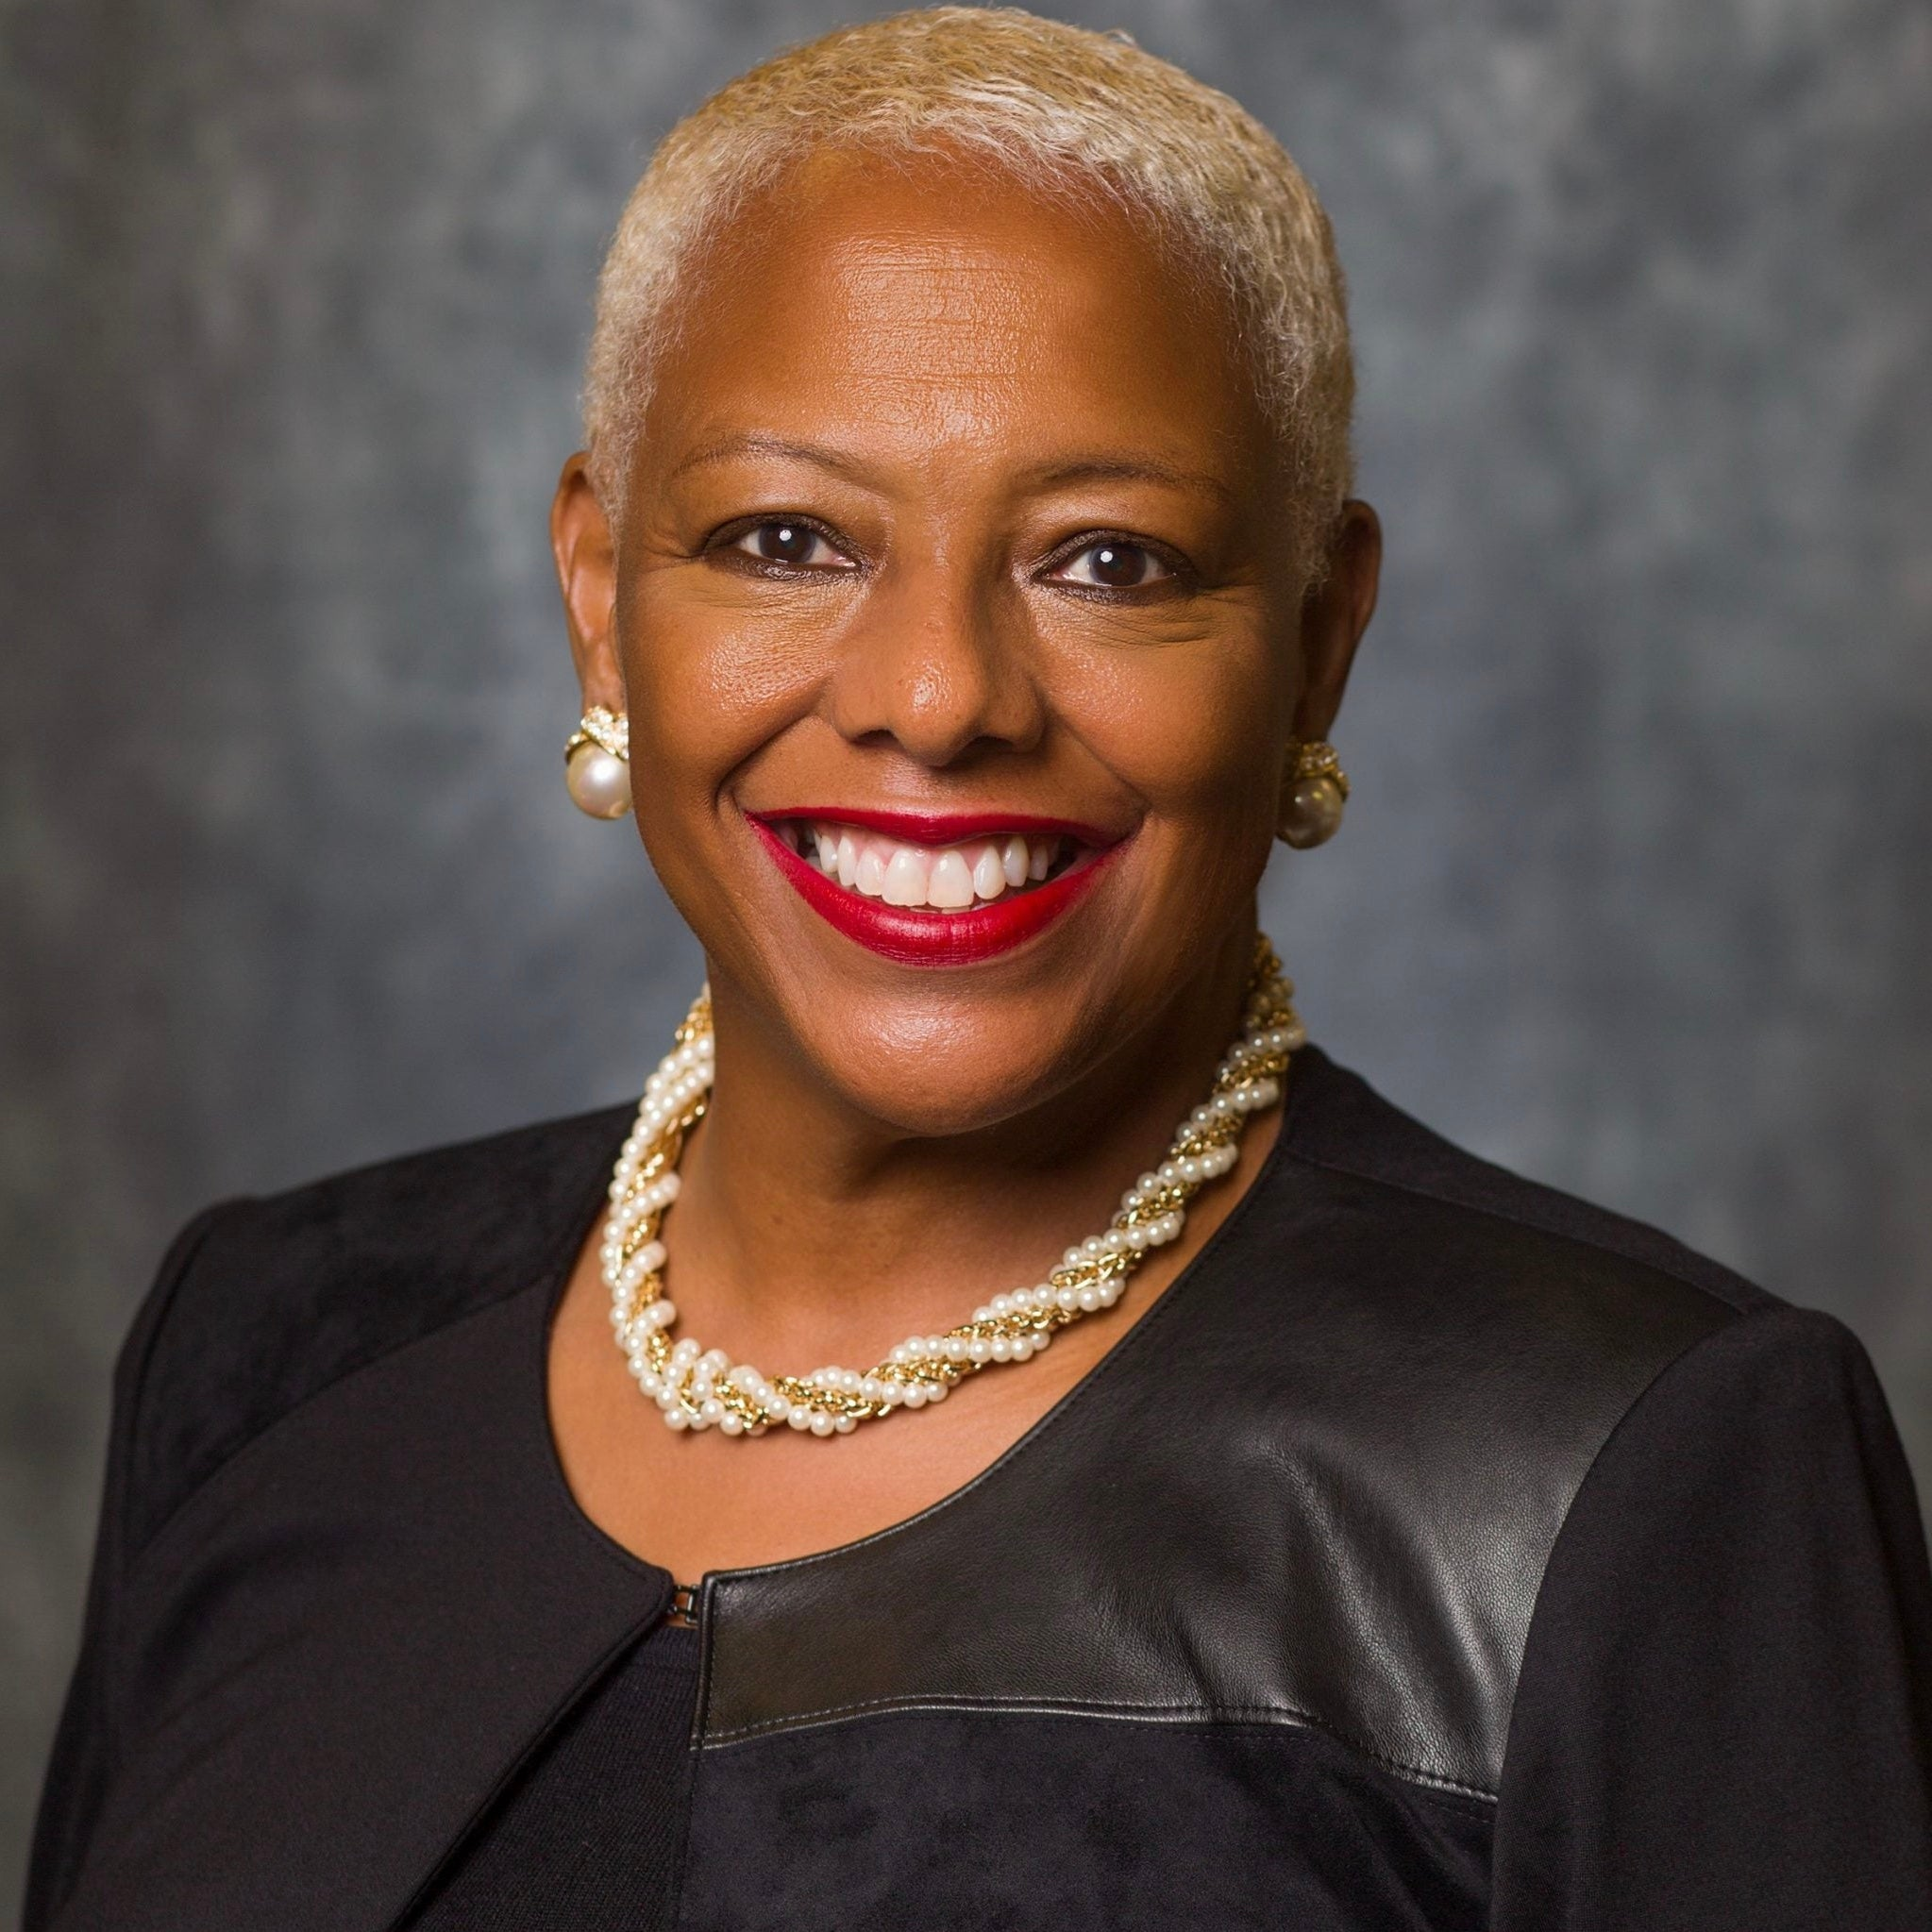 DR. JAVAUNE ADAMS-GASTON